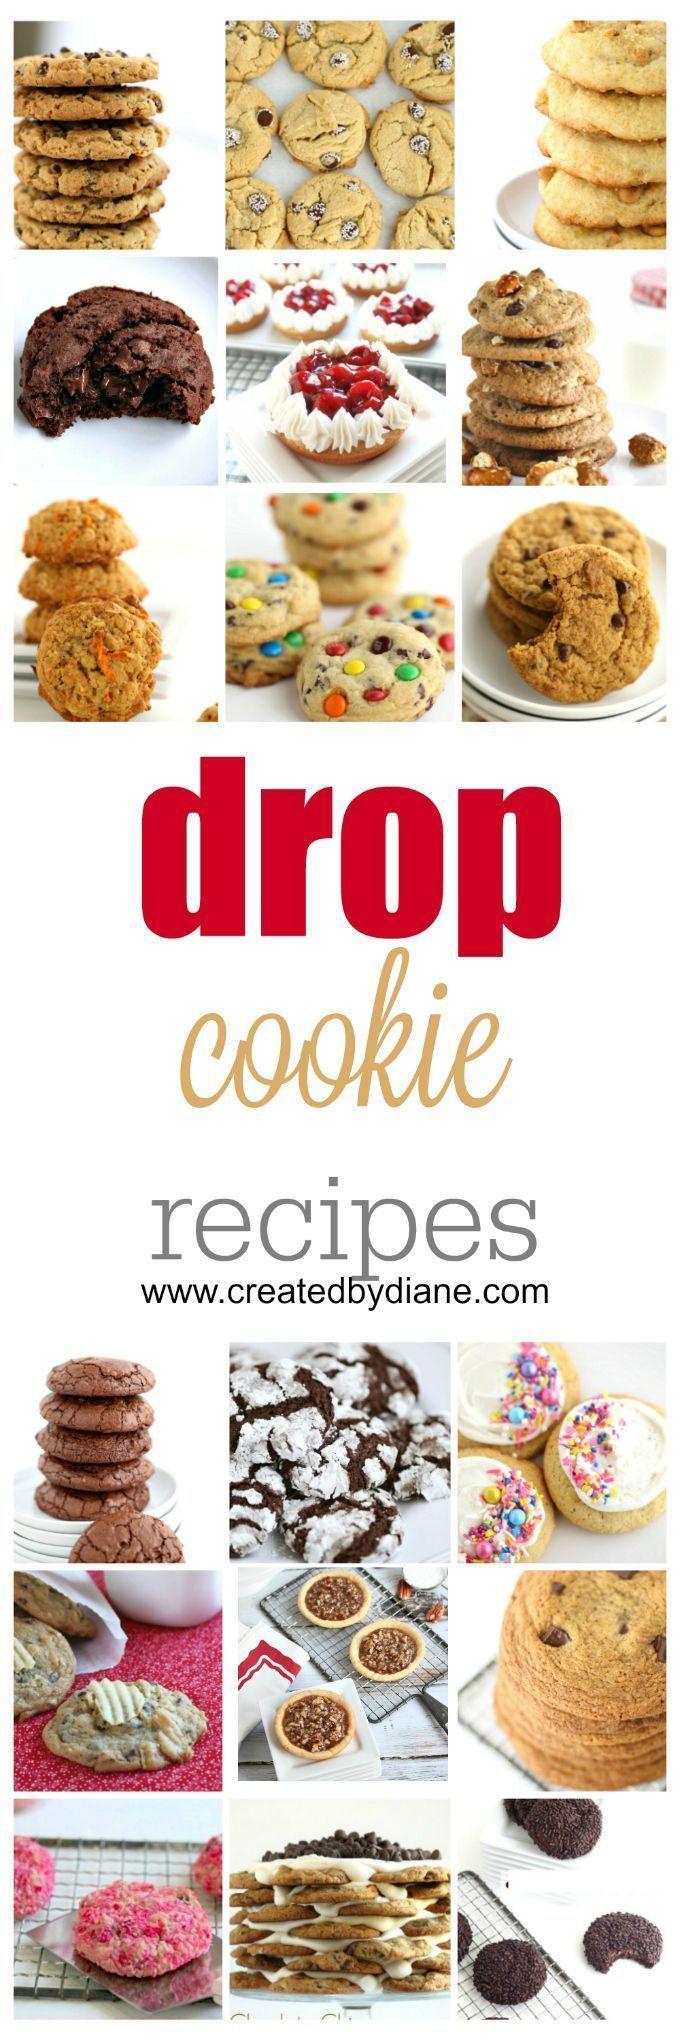 drop cookie recipes that are easy to make www.createdbydiane.com